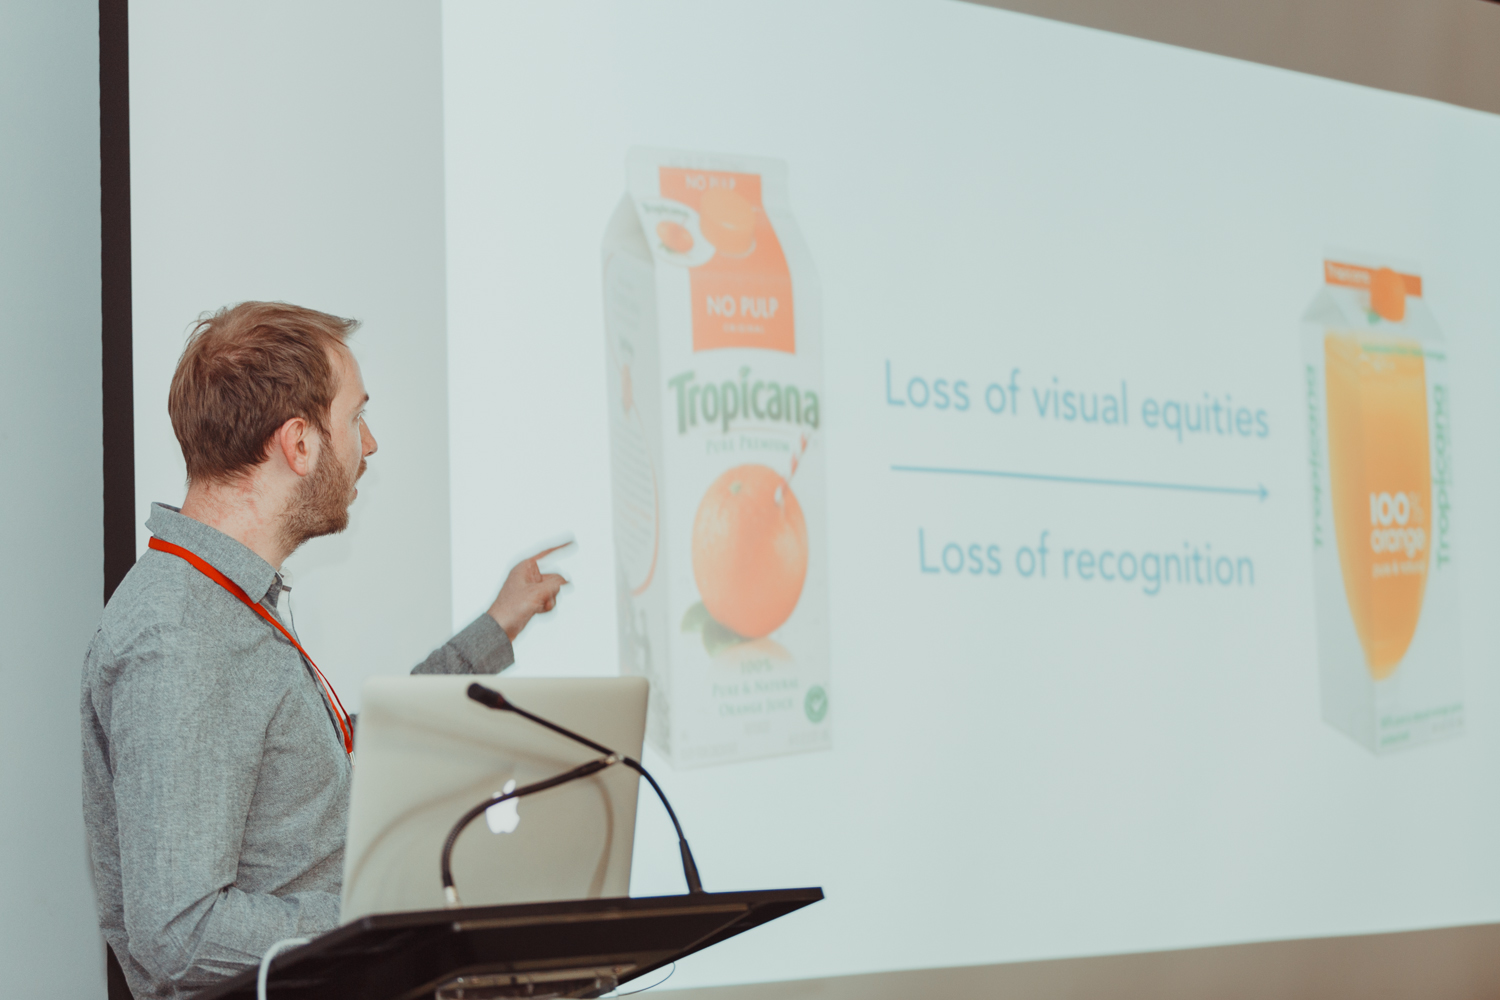 Photos: Stuart Chapman speaks on the value and methodologies of design research